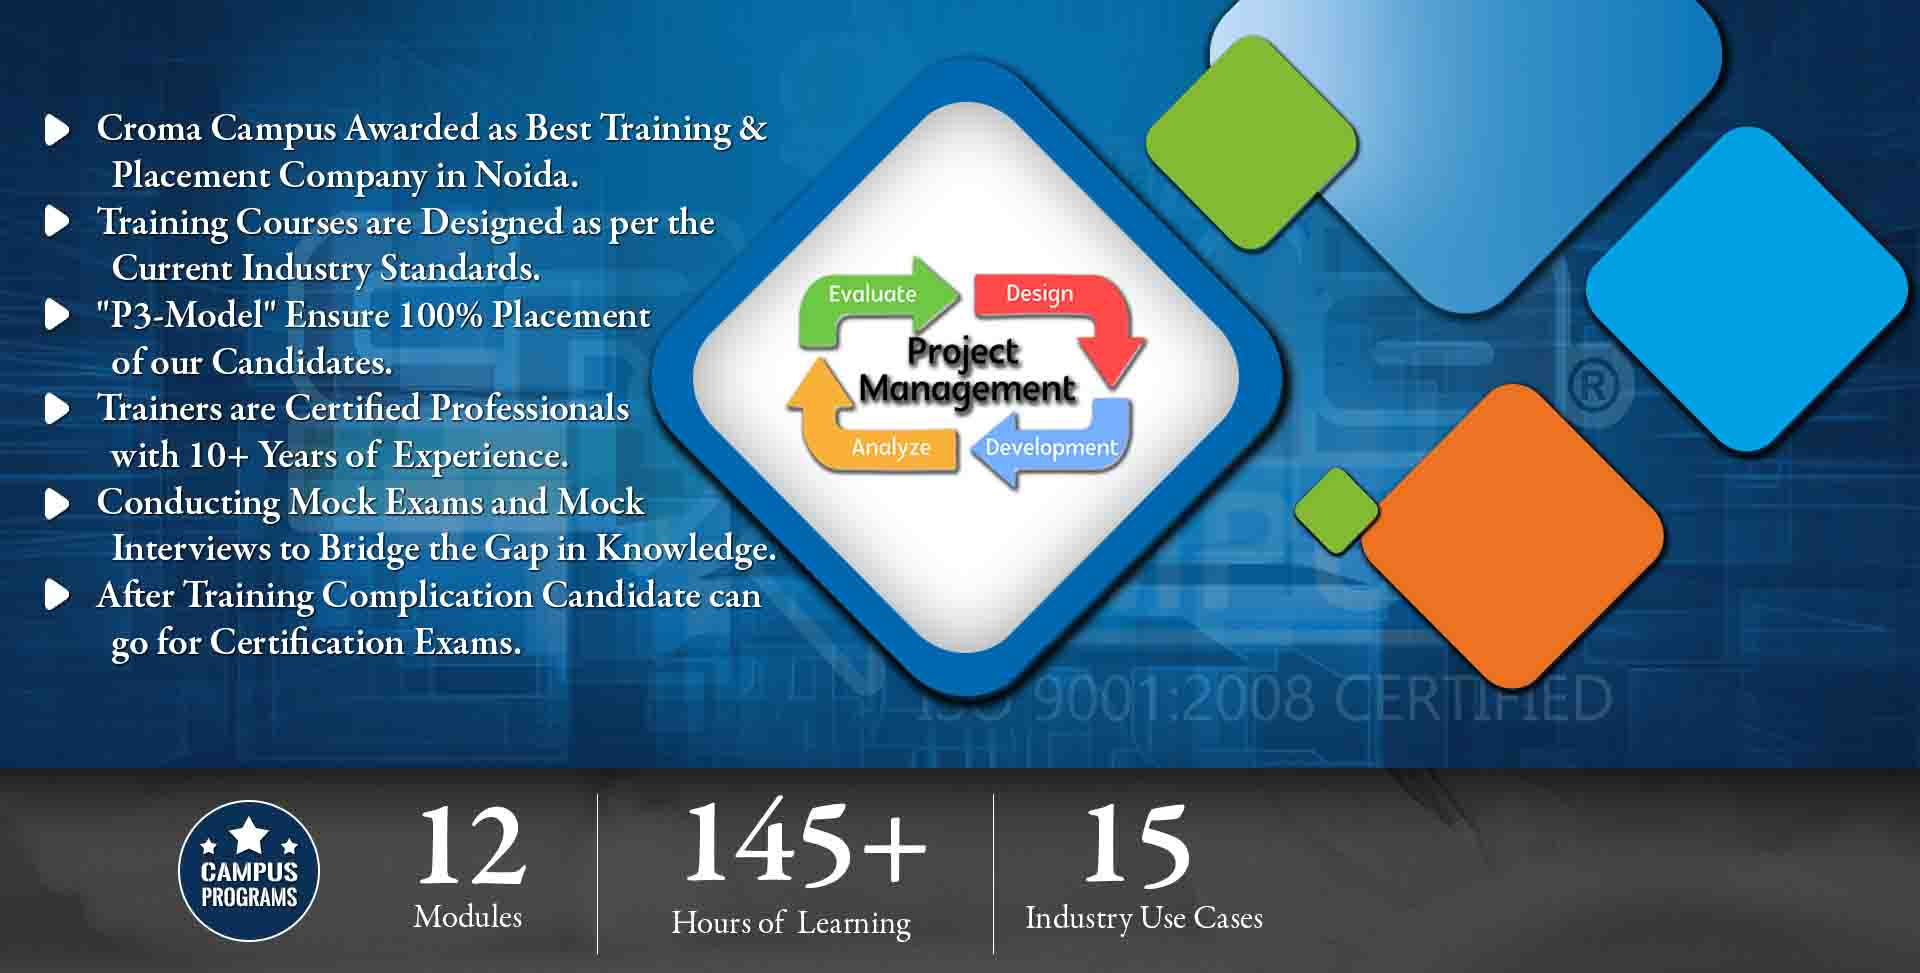 Project Management Training in Noida- Croma Campus